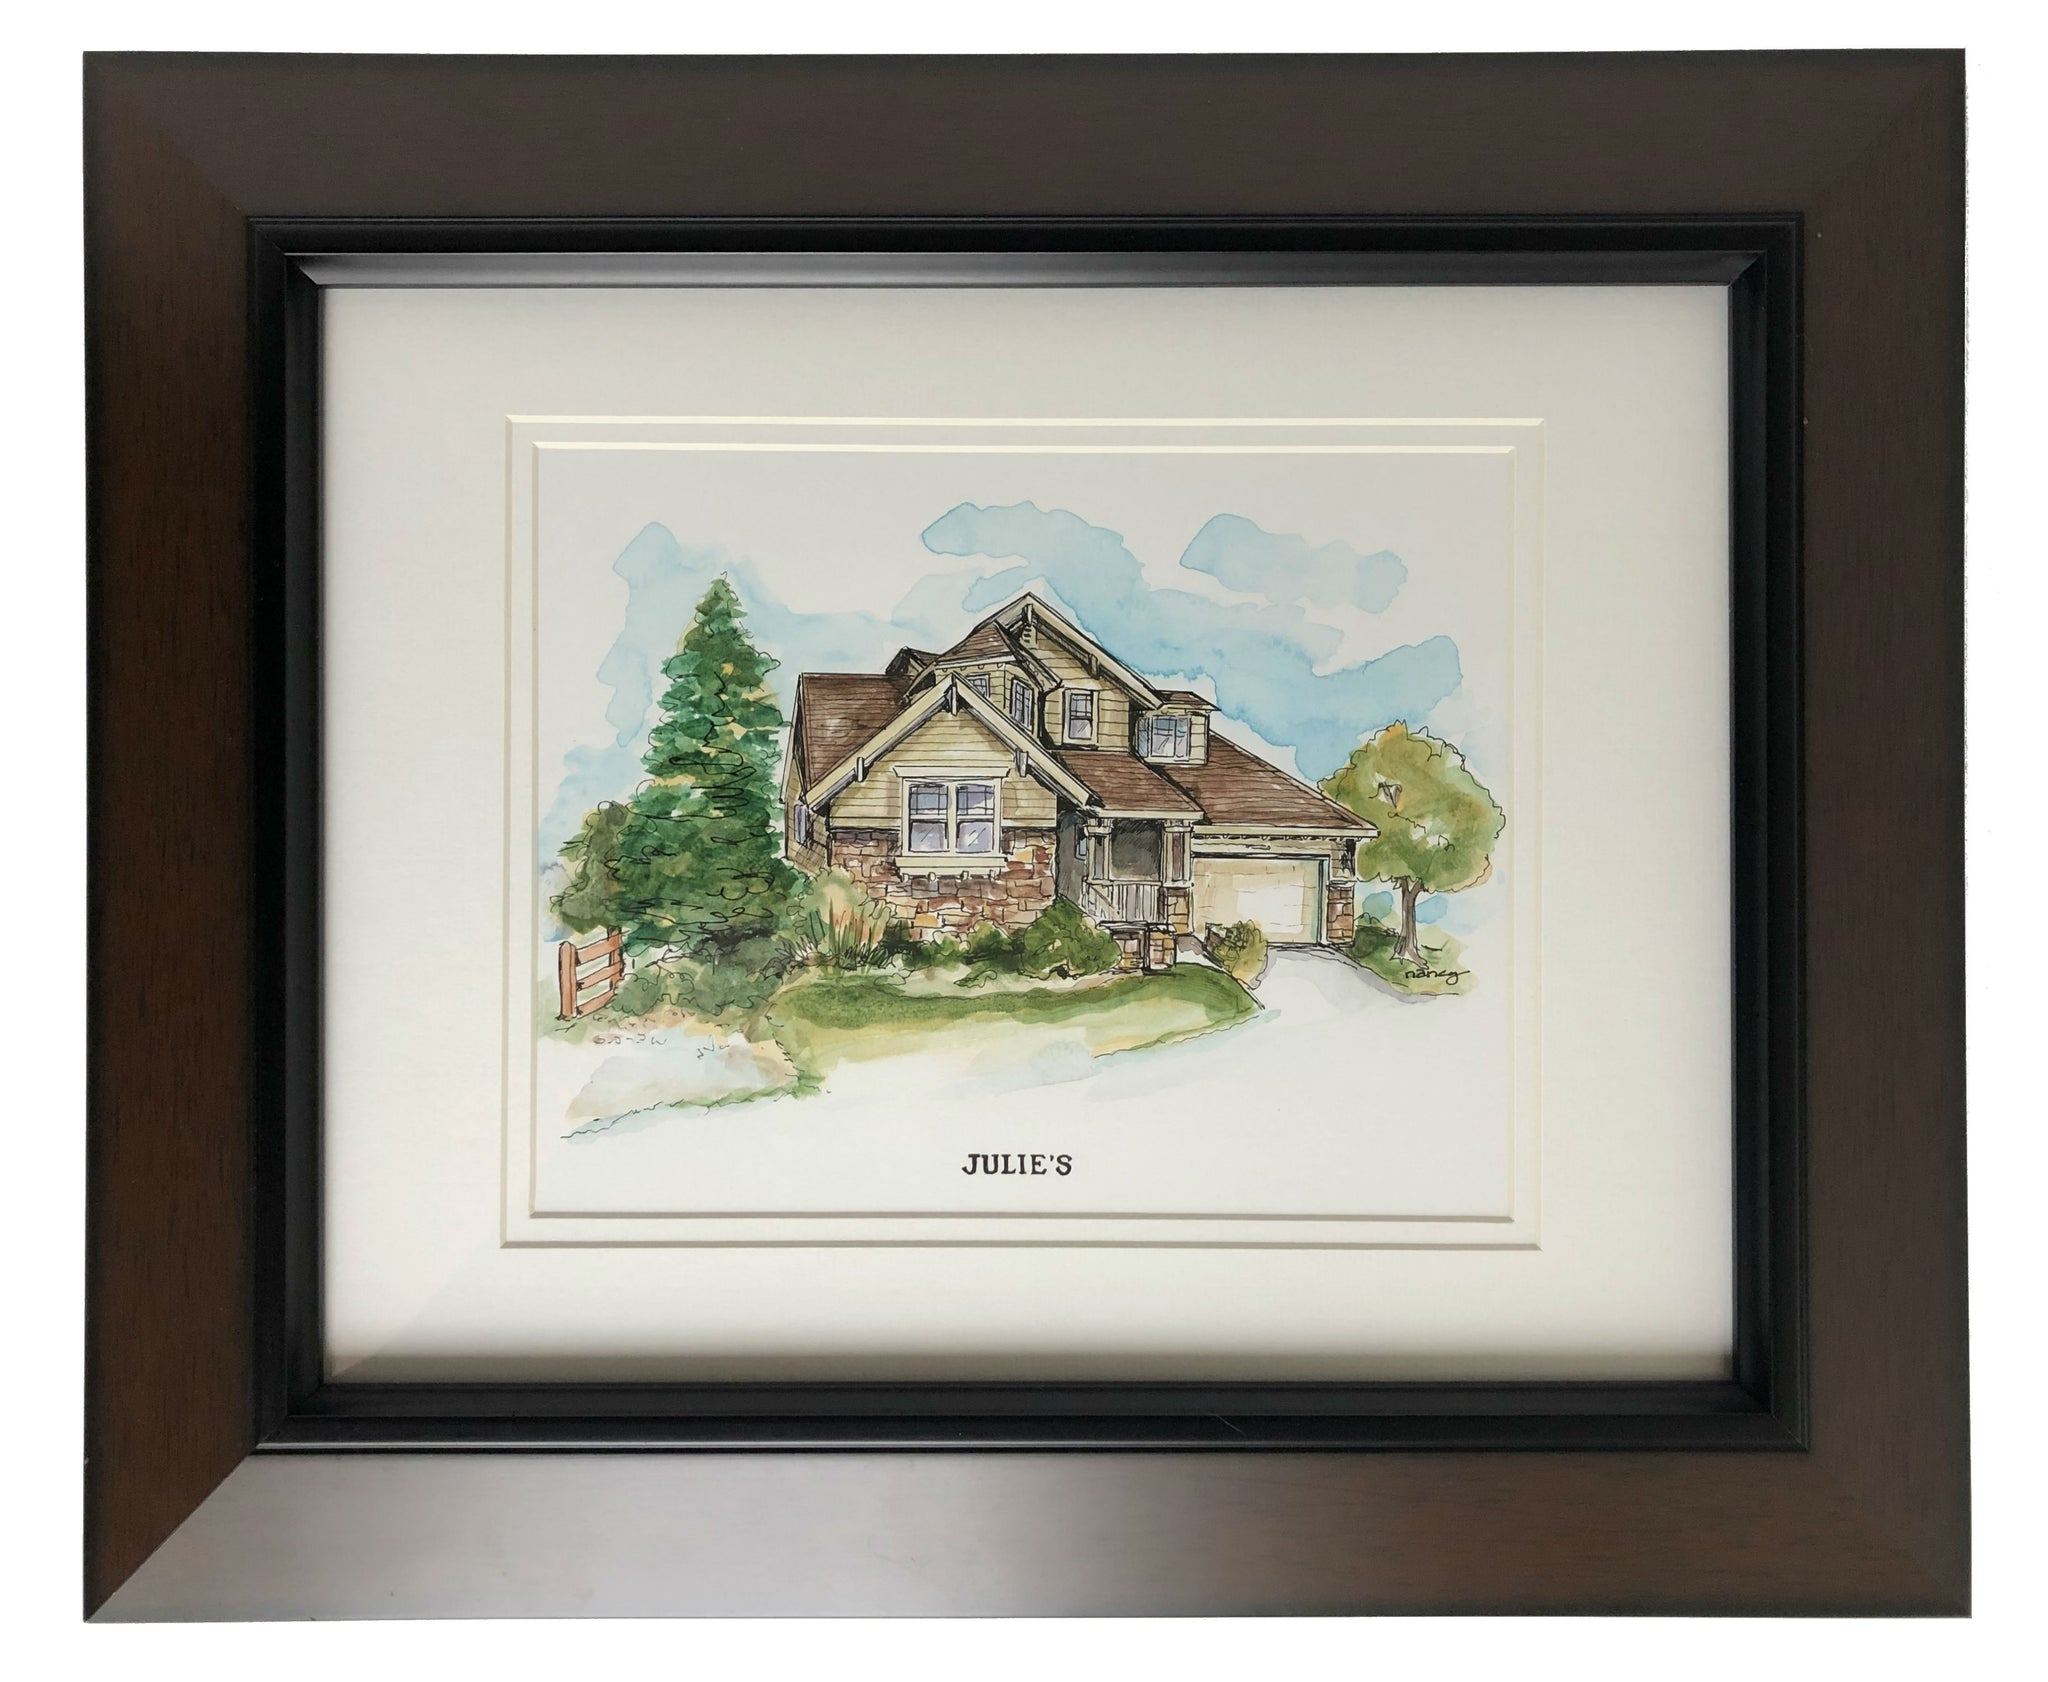 A portrait of your home tastefully done in watercolor and India ink